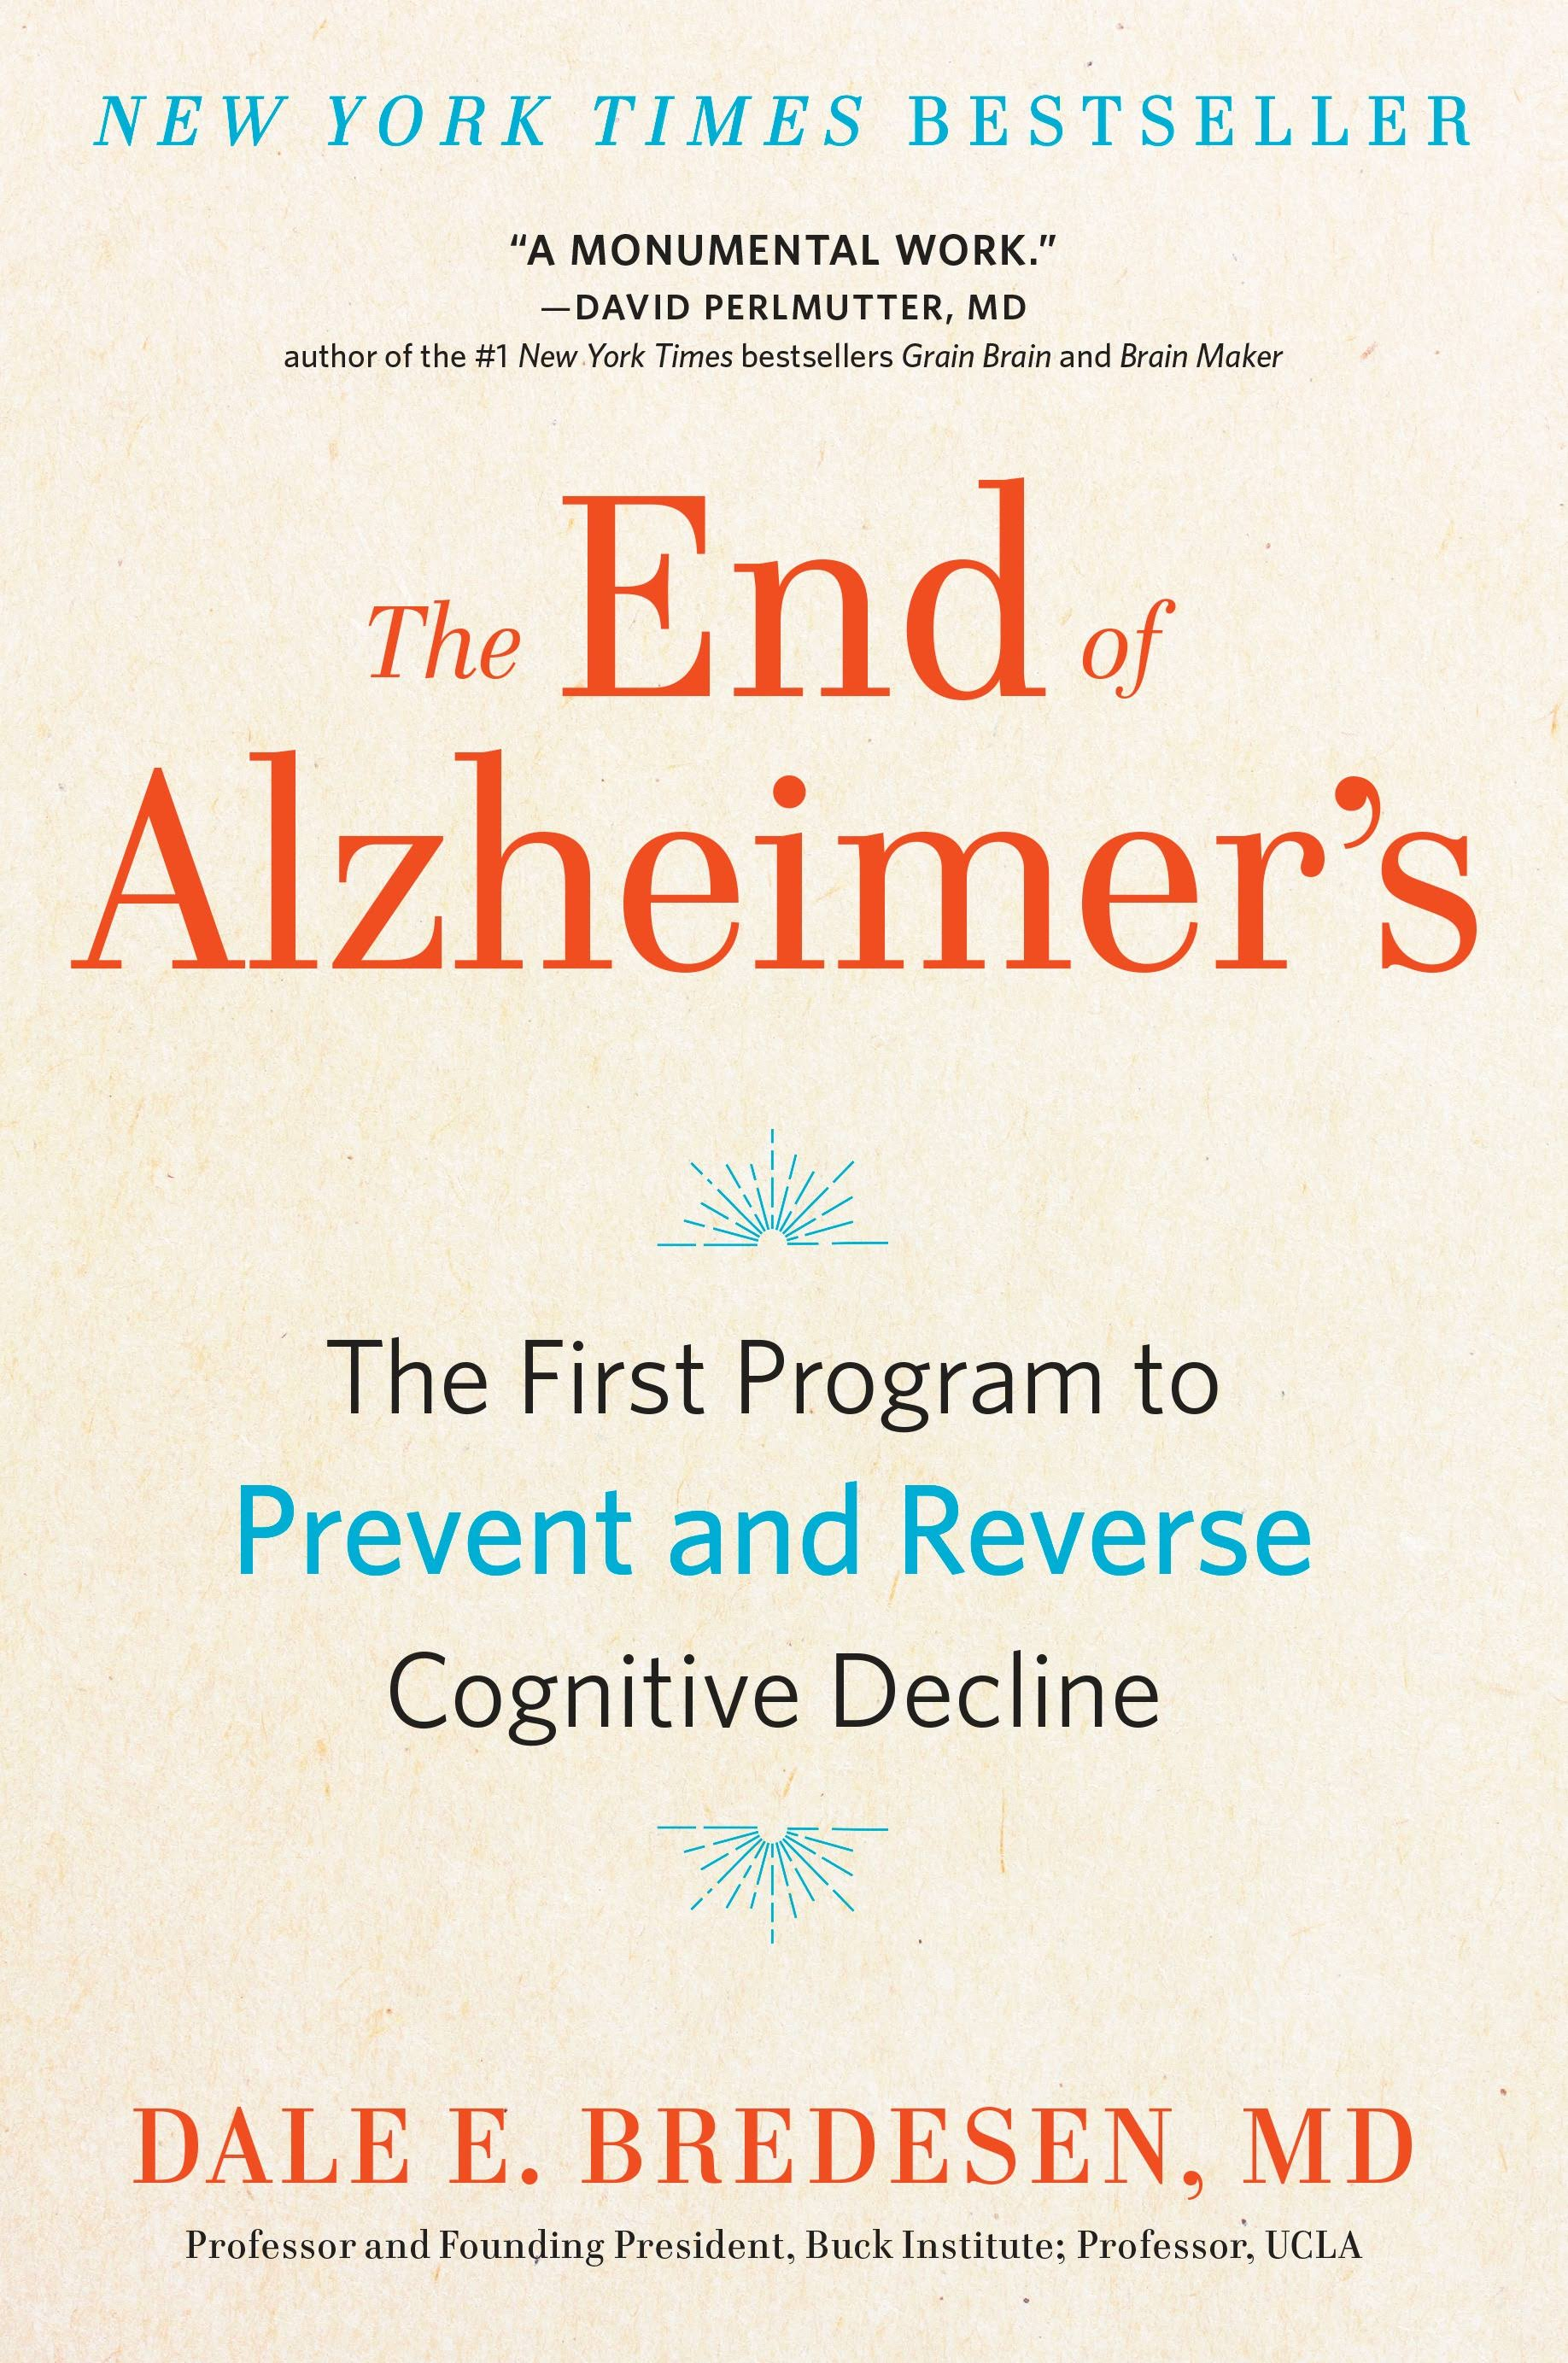 Dr. Dale Bredesen is the author of the ground-breaking book, The End of Alzheimer's.